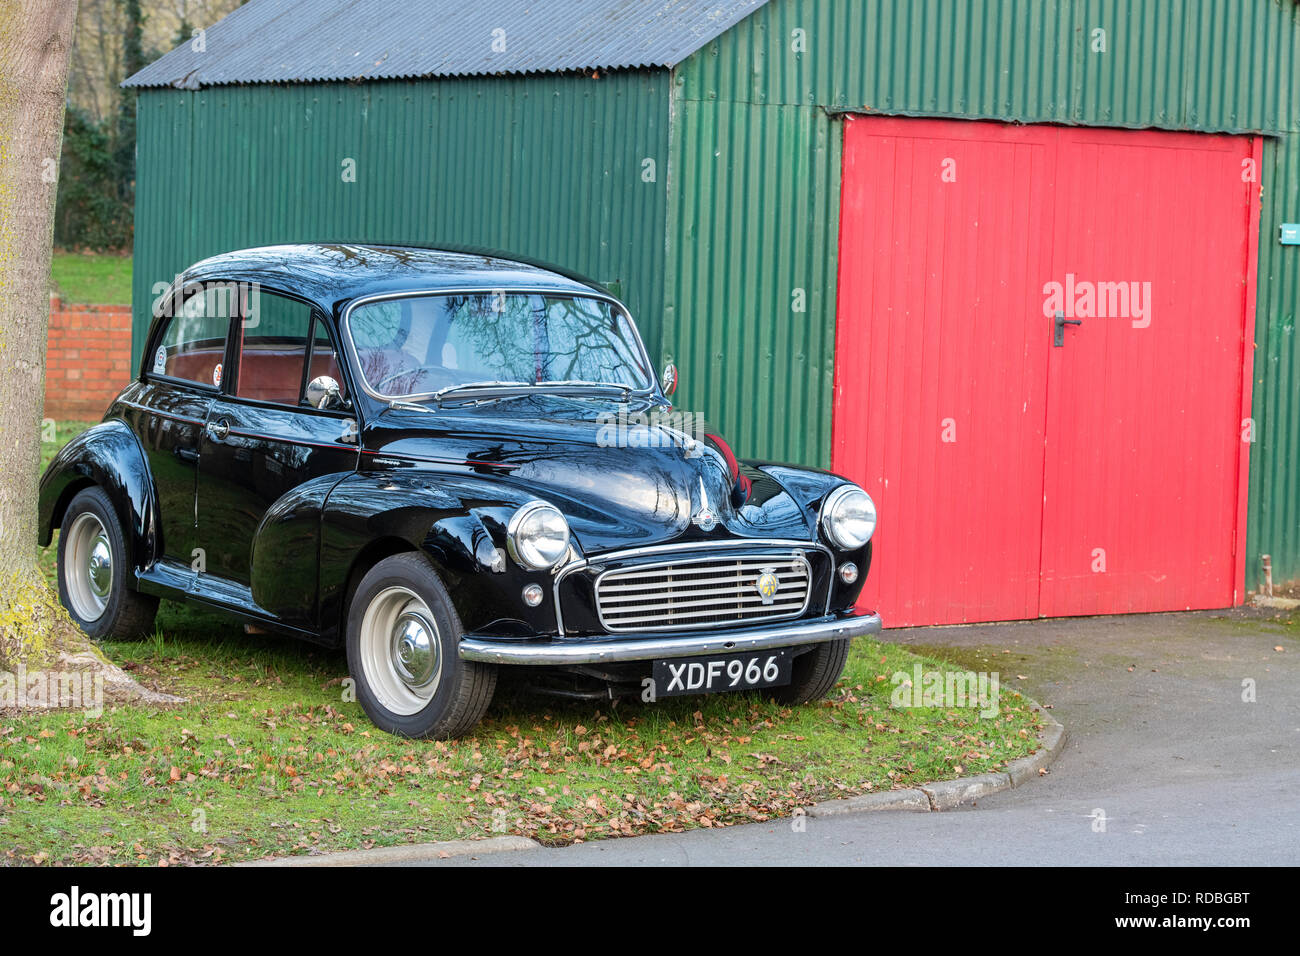 1959 Morris minor 1000 car at Bicester heritage centre, Oxfordshire, England - Stock Image